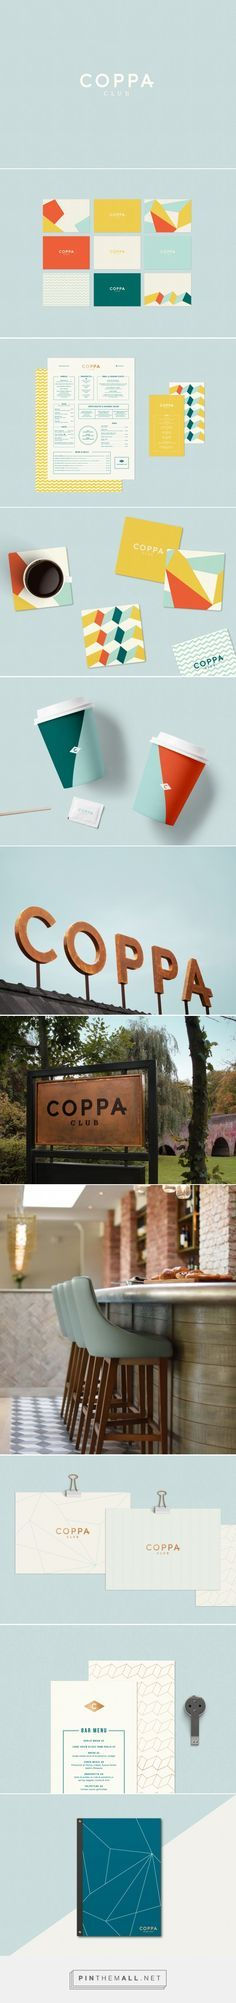 Coppa Club Branding by The Plant | Fivestar Branding – Design and Branding Agency & Inspiration Gallery